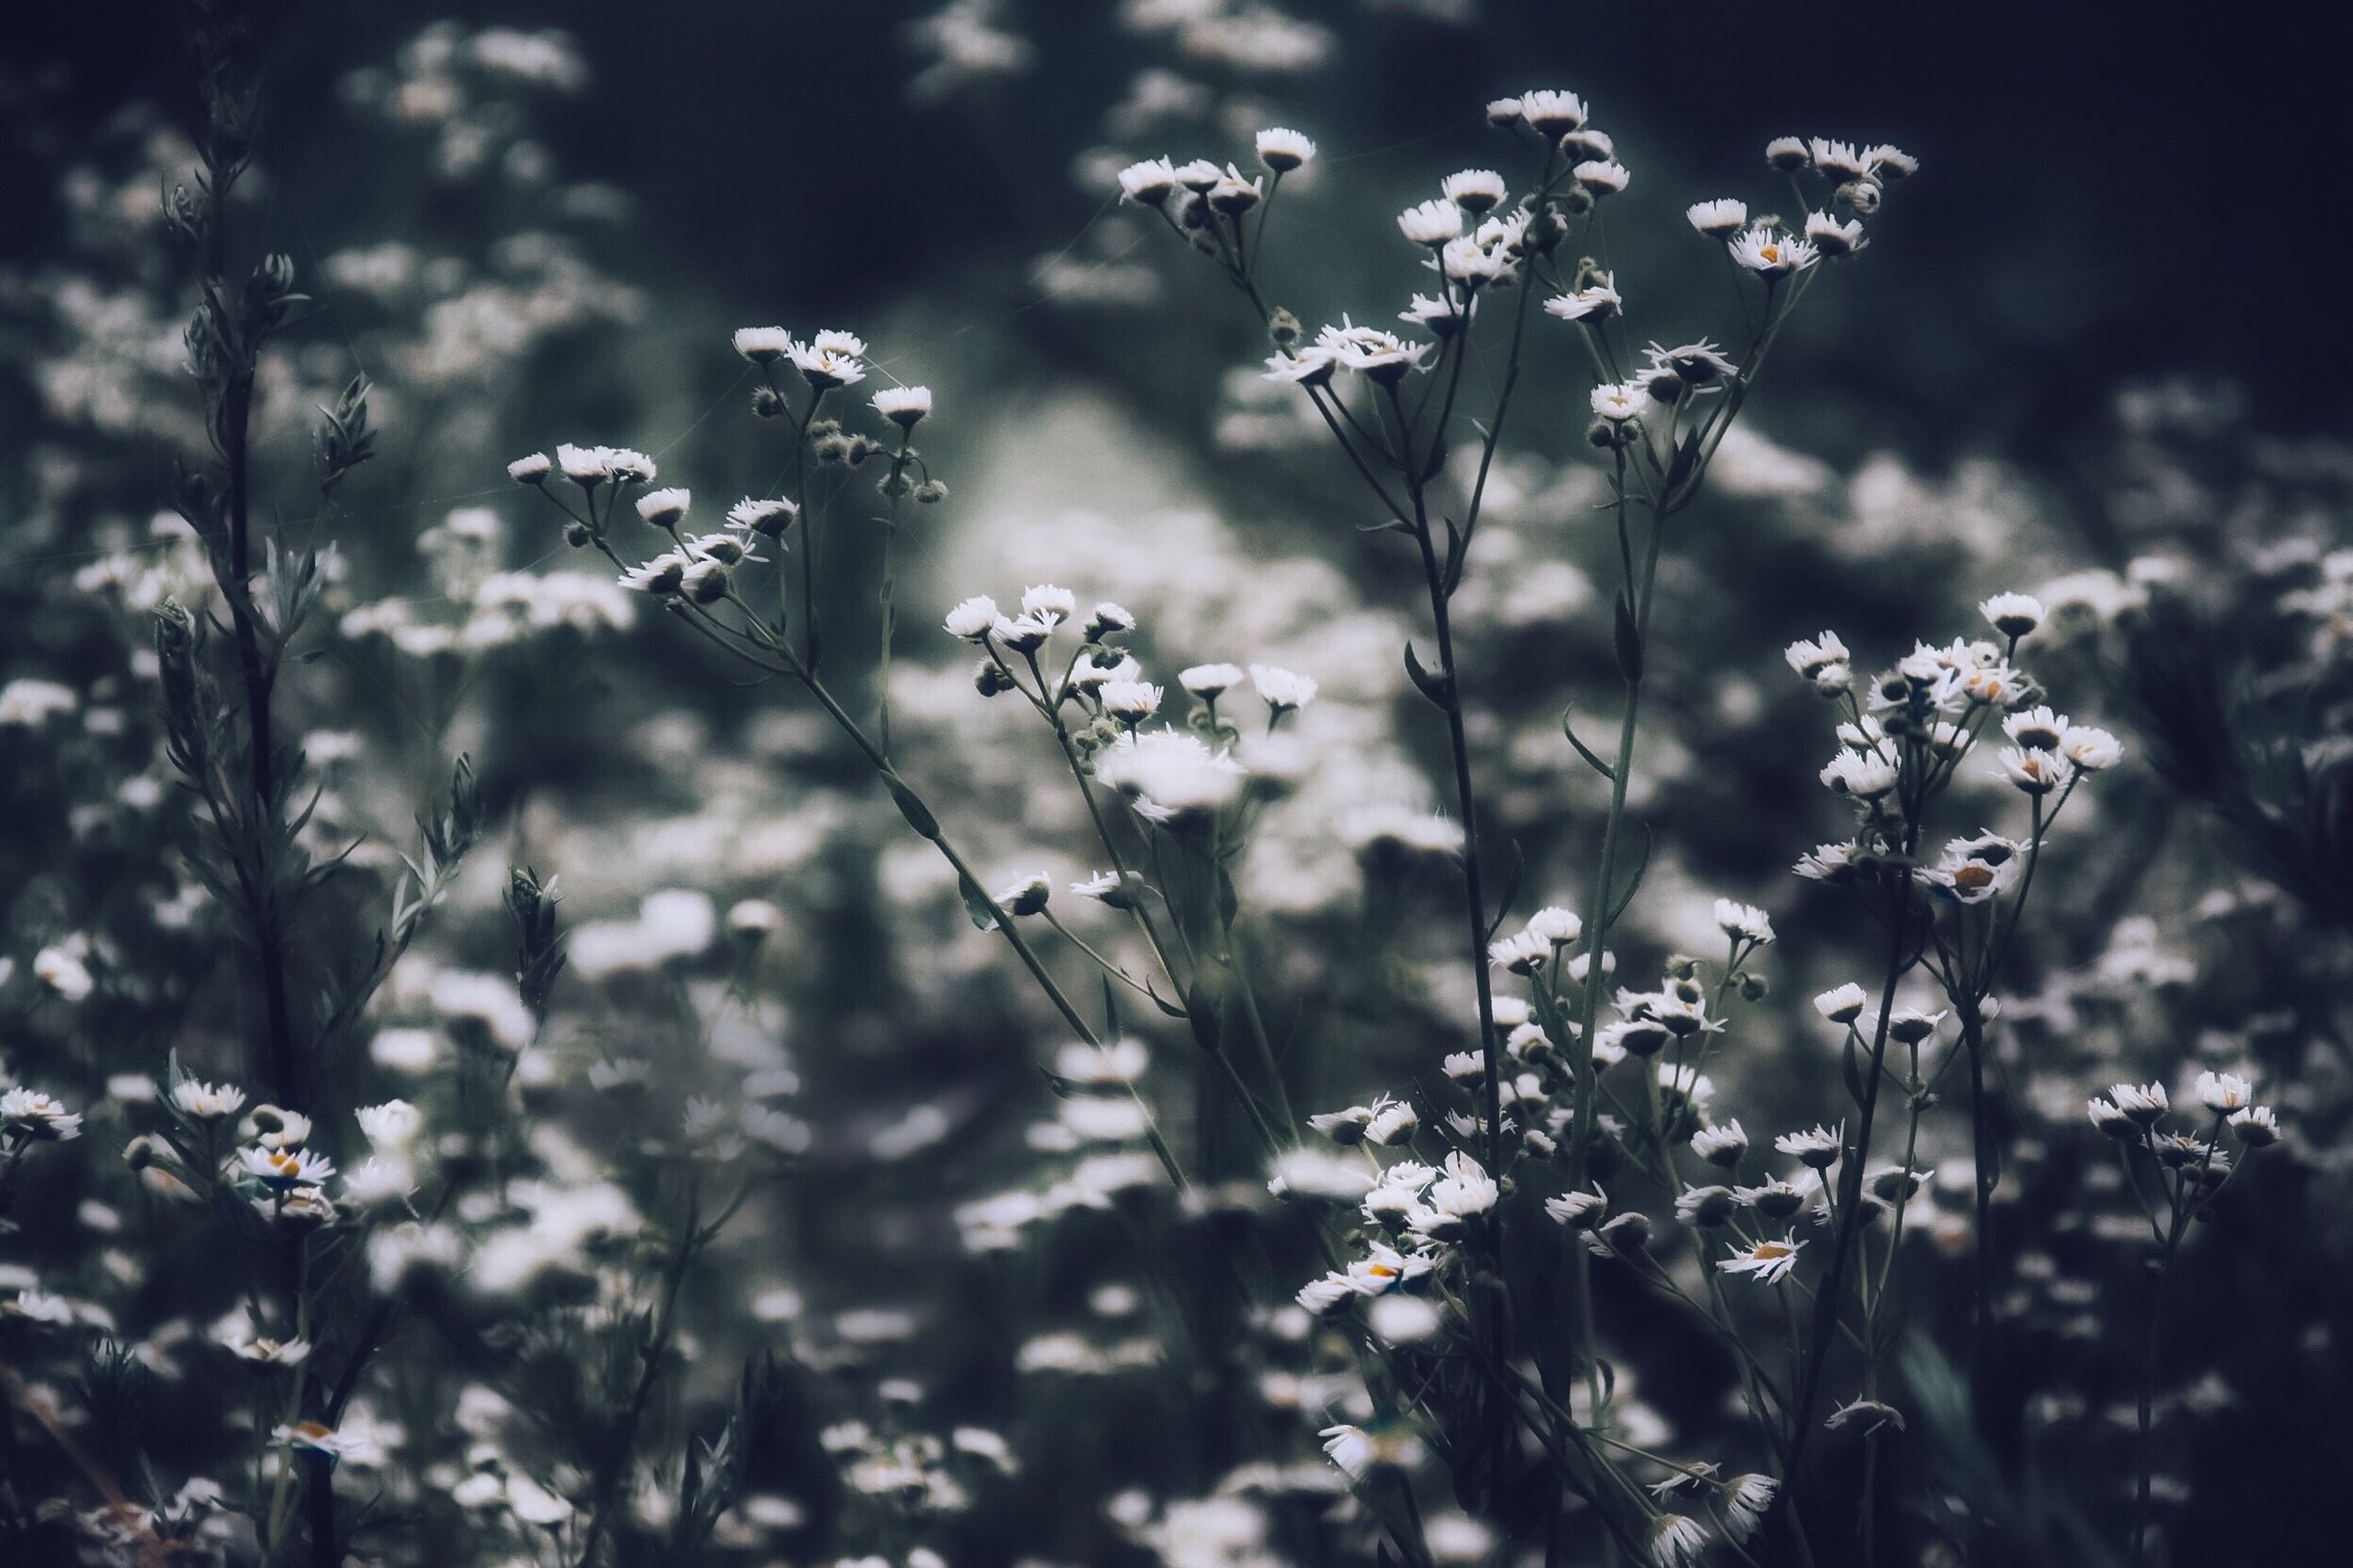 flower, growth, freshness, fragility, plant, beauty in nature, nature, focus on foreground, blooming, petal, stem, field, selective focus, close-up, wildflower, in bloom, flower head, outdoors, blossom, day